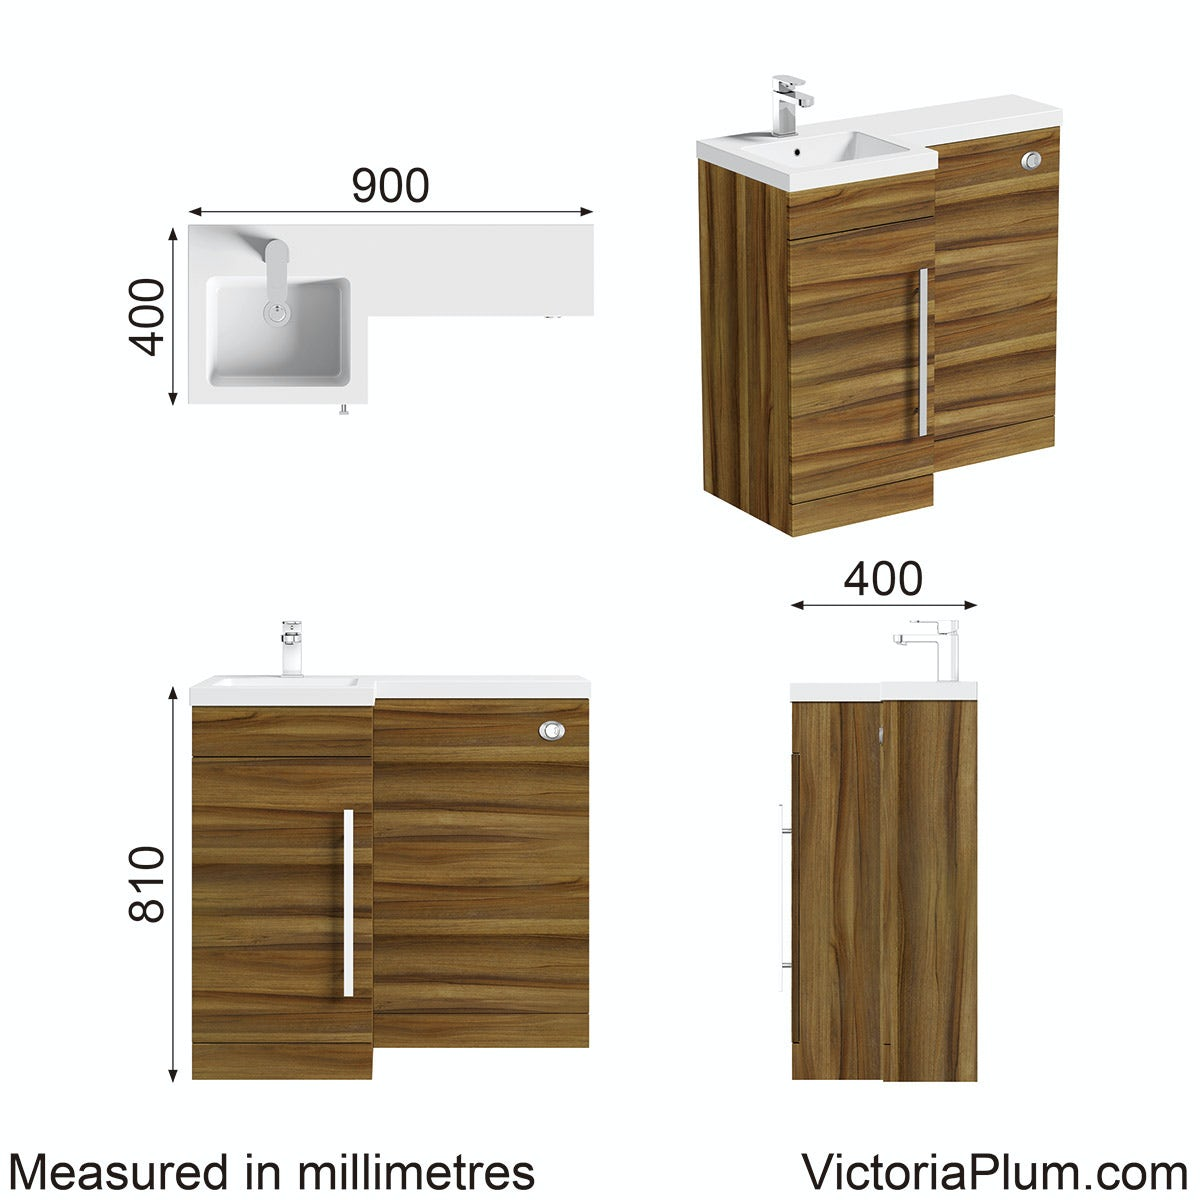 Dimensions for Orchard MySpace walnut left handed unit including concealed cistern